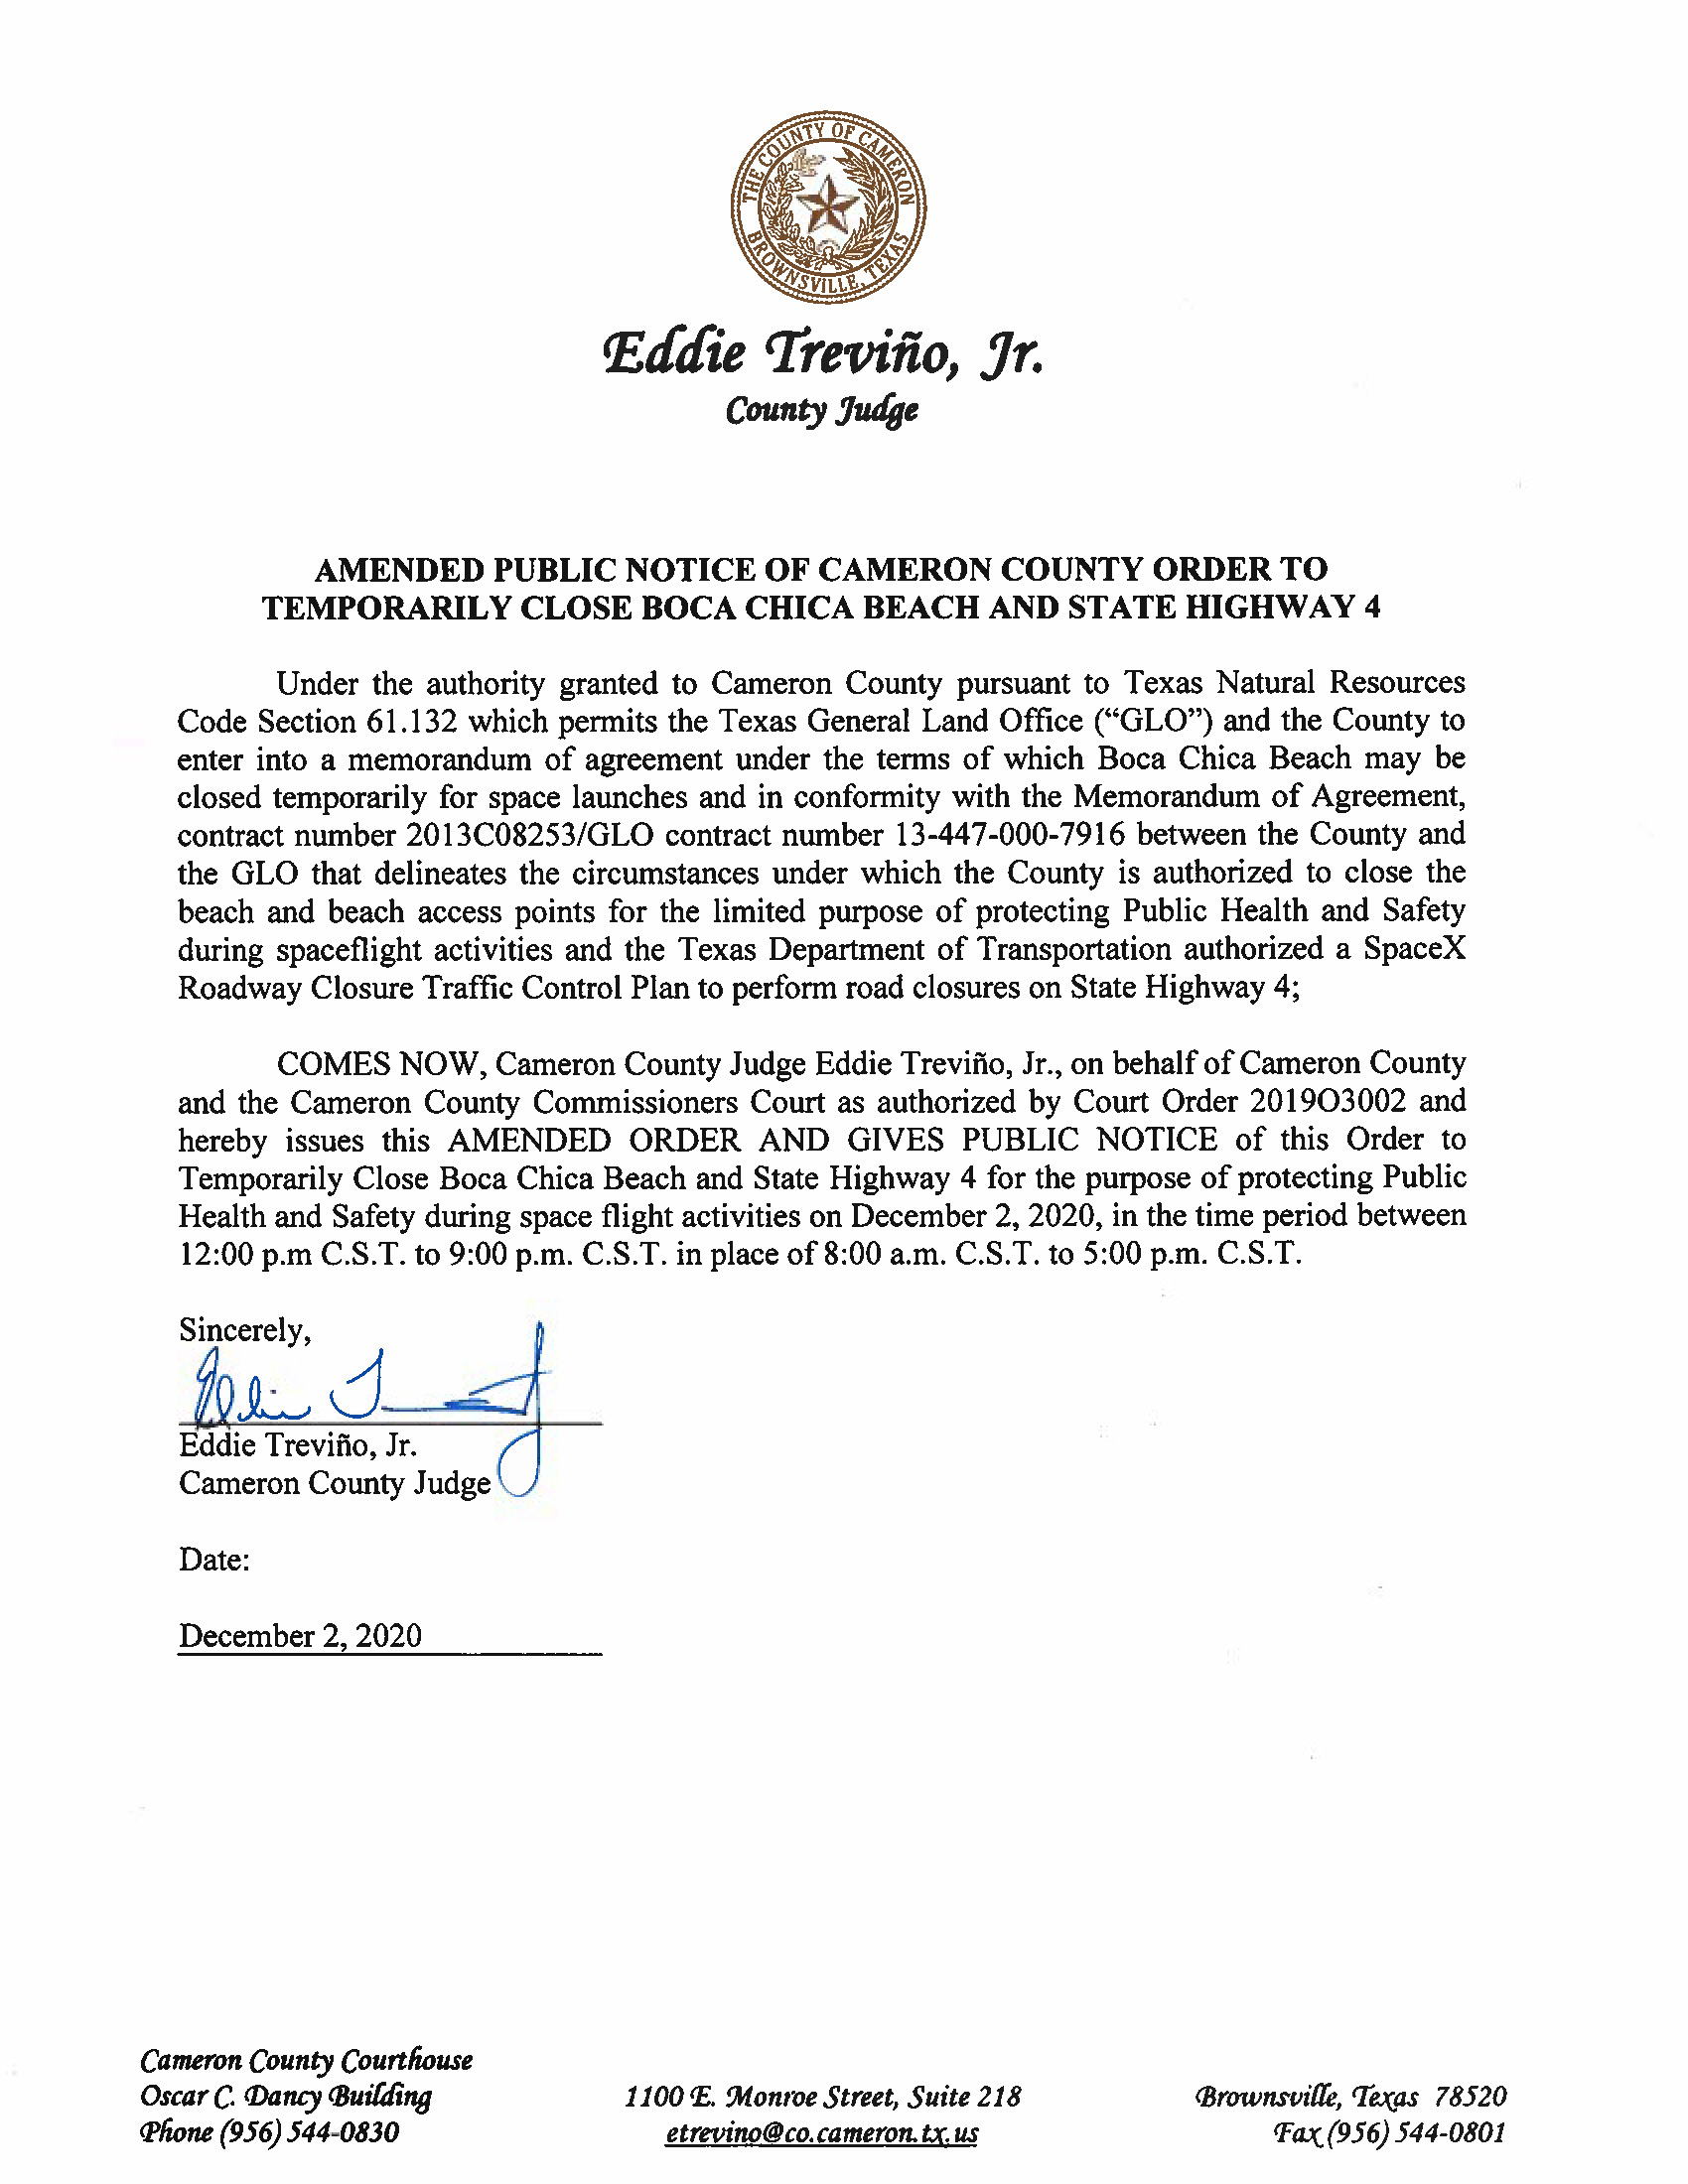 AMENDMENT PUBLIC NOTICE OF CAMERON COUNTY ORDER TO TEMP. BEACH CLOSURE AND HWY.12.02.20